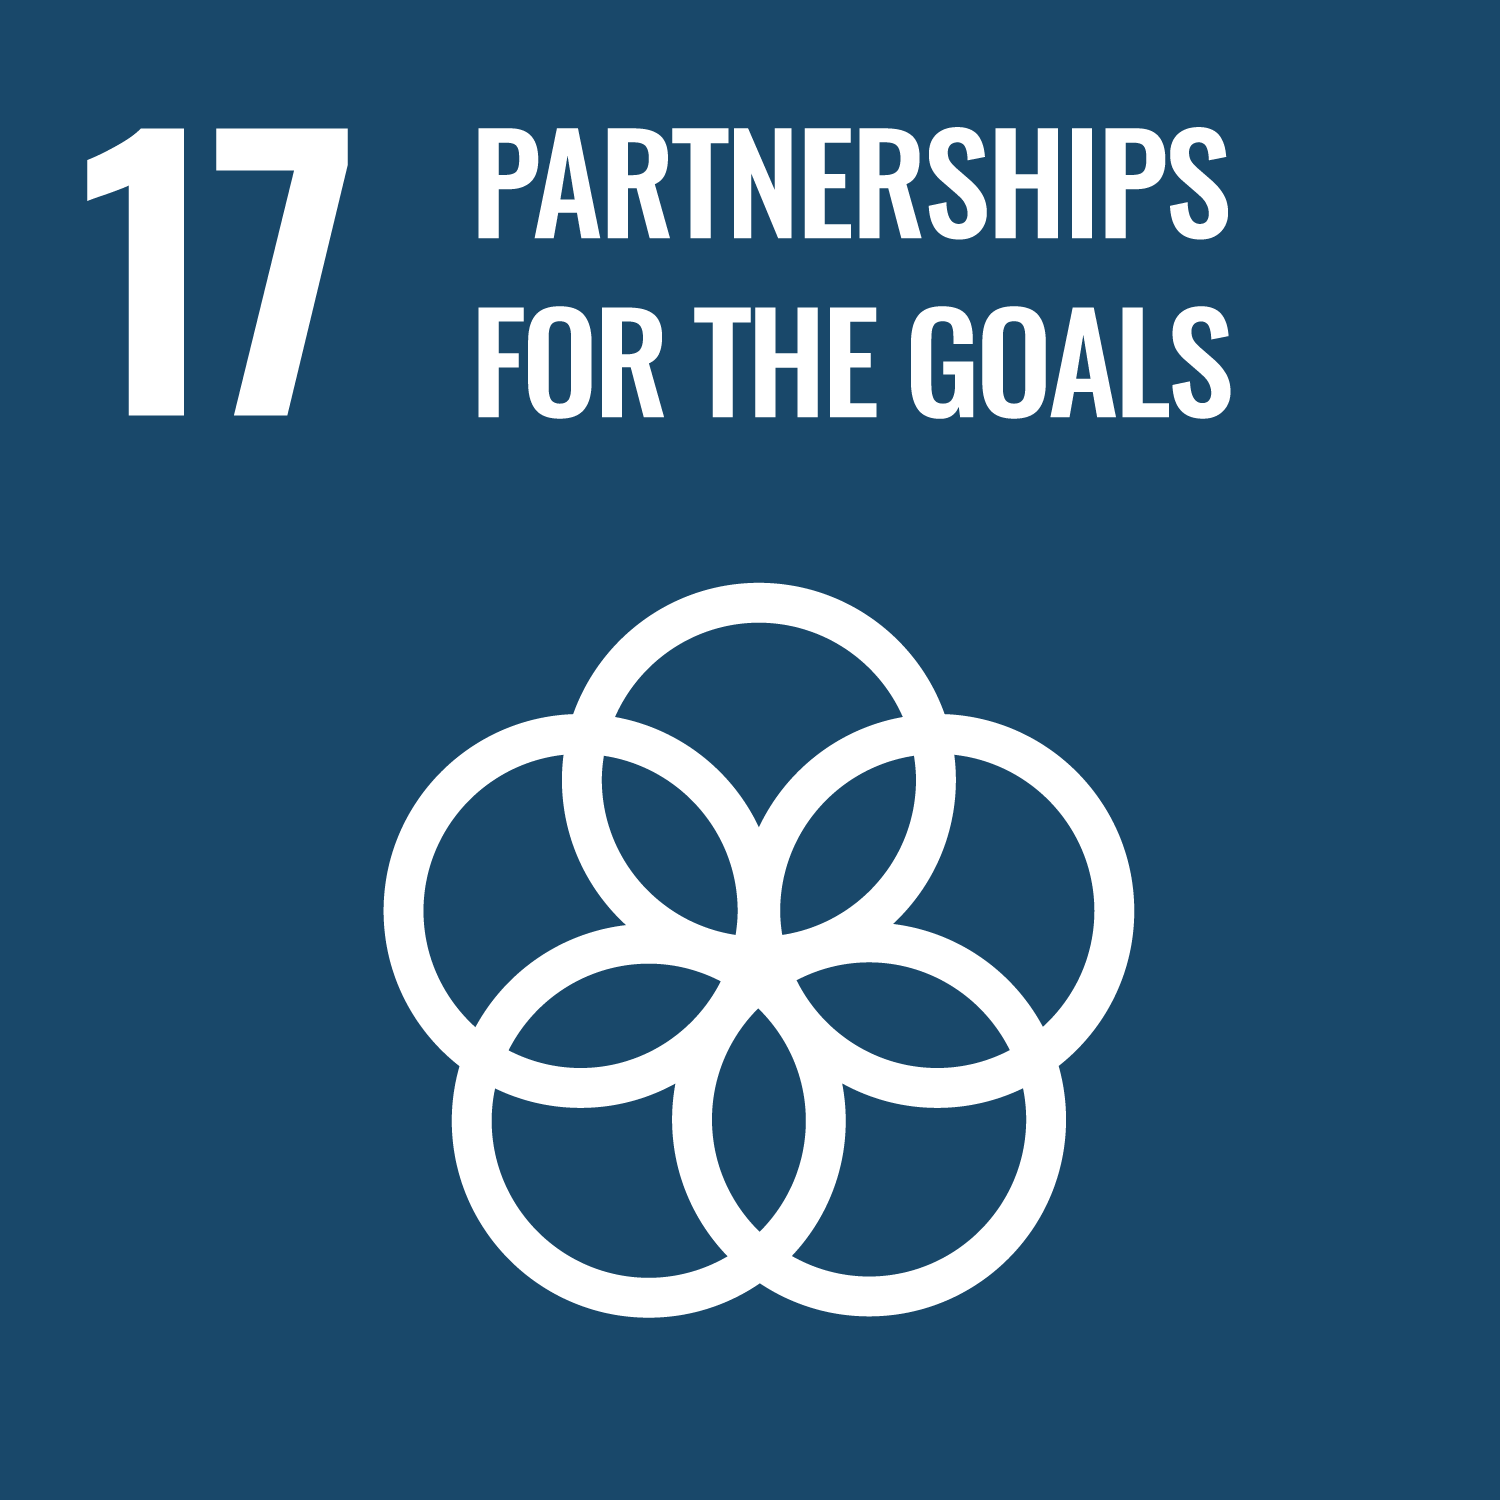 17. Partnerships for the goals We can do more by partnering with companies who have a shared vision and goals of placing focus on individuals and our planet. How we target this SDG? Mighty Buildings follows the UN's Sustainable Development Goals. We care about environmental protection, compliance with human rights, as well as anti-discrimination and anti-corruption policies. Mighty Buildings wants to partner with organizations that are consistent with our Supplier Code of Conduct, which outlines our Environment, Social and Governance expectations from our suppliers.